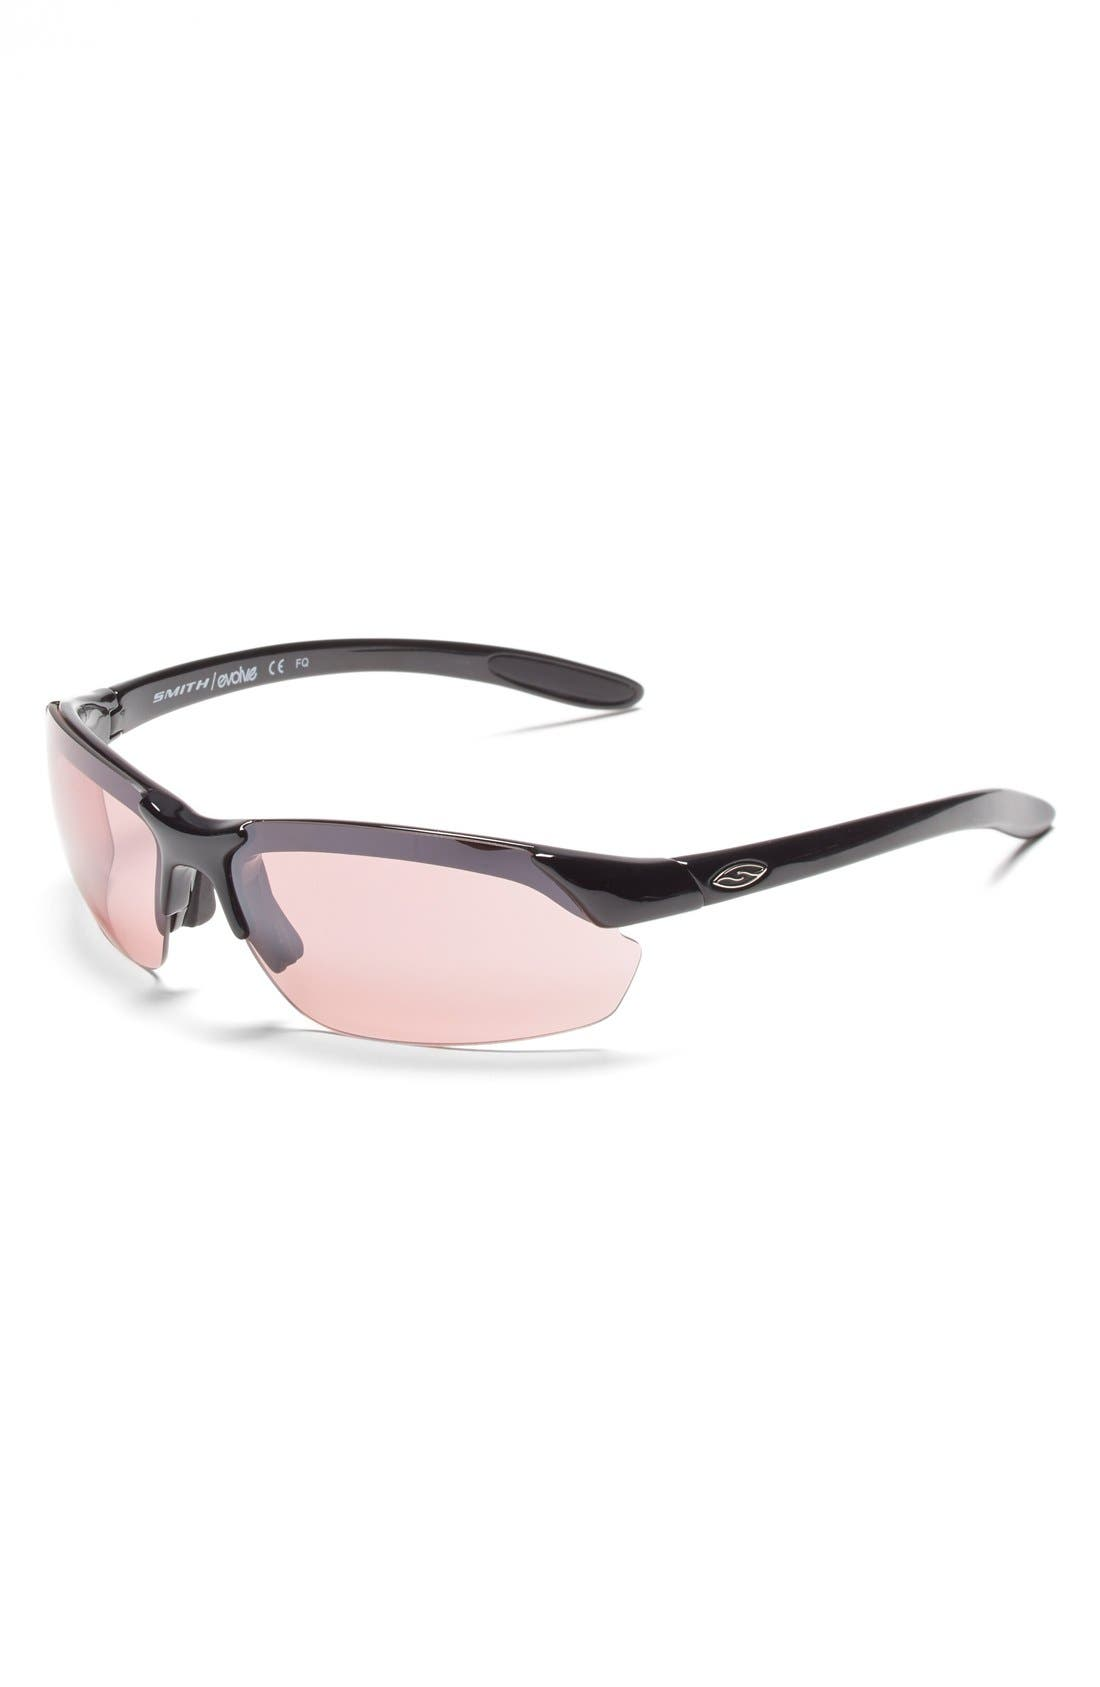 'Parallel Max' 65mm Polarized Sunglasses,                             Alternate thumbnail 4, color,                             Black/ Polar Grey/ Clear